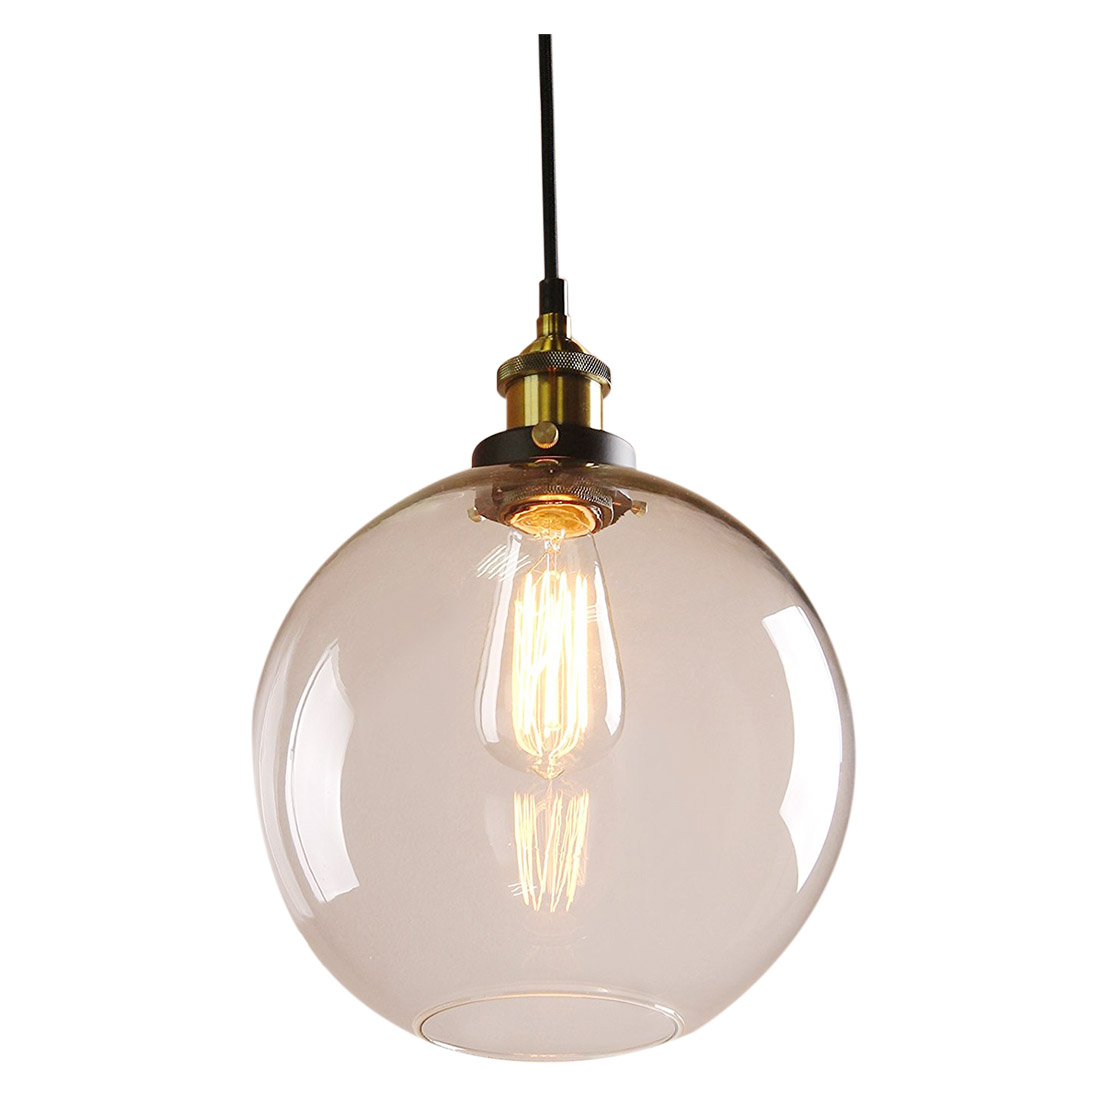 купить Modern Industrial Metal Glass Loft Pendant Light  Lamp Retro Ceiling Vintage Lamp(Antique head diameter 25cm) недорого